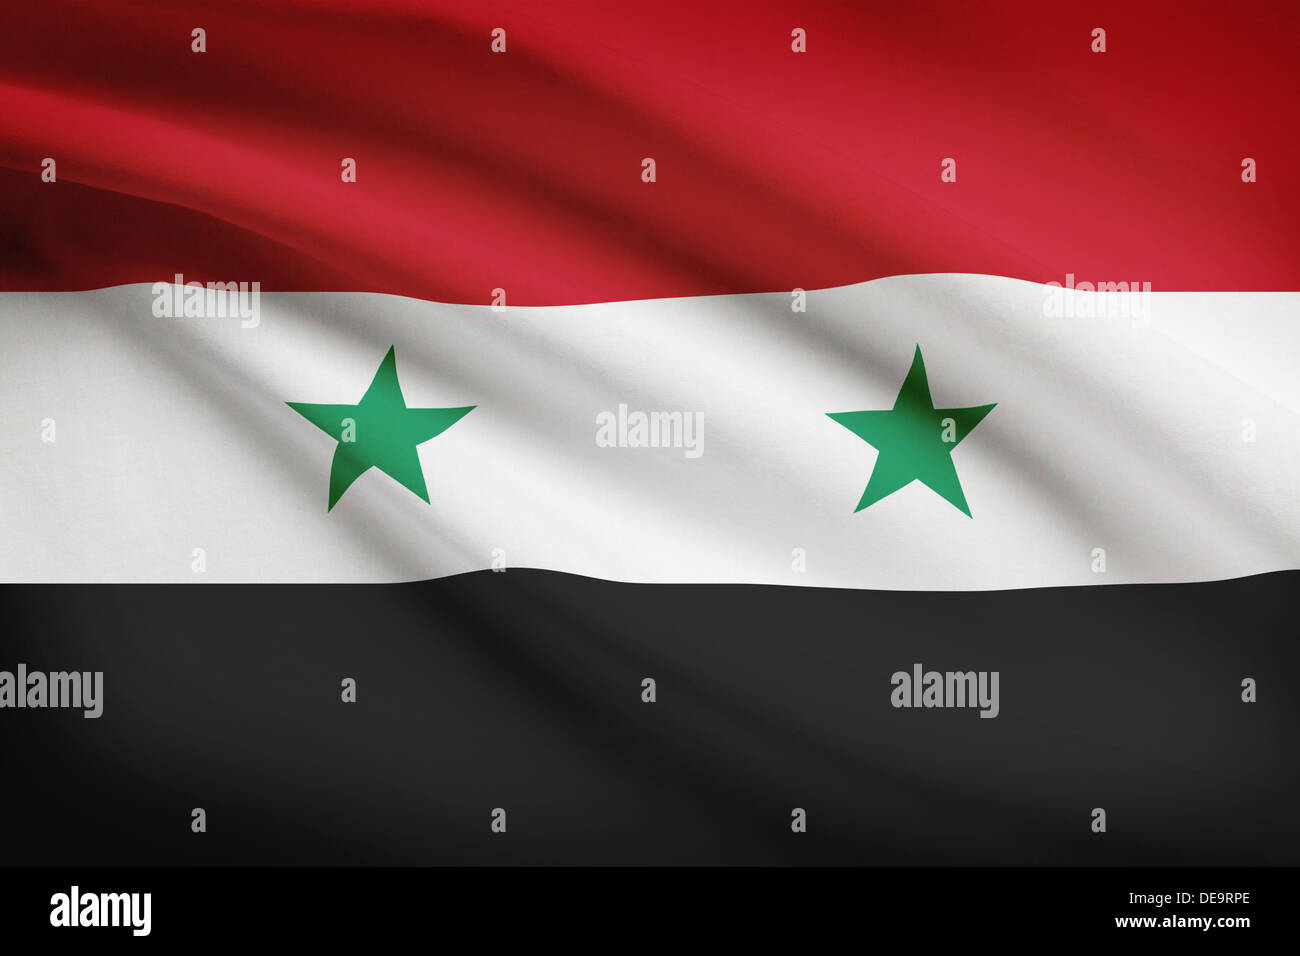 Syrian flag blowing in the wind. Part of a series. - Stock Image